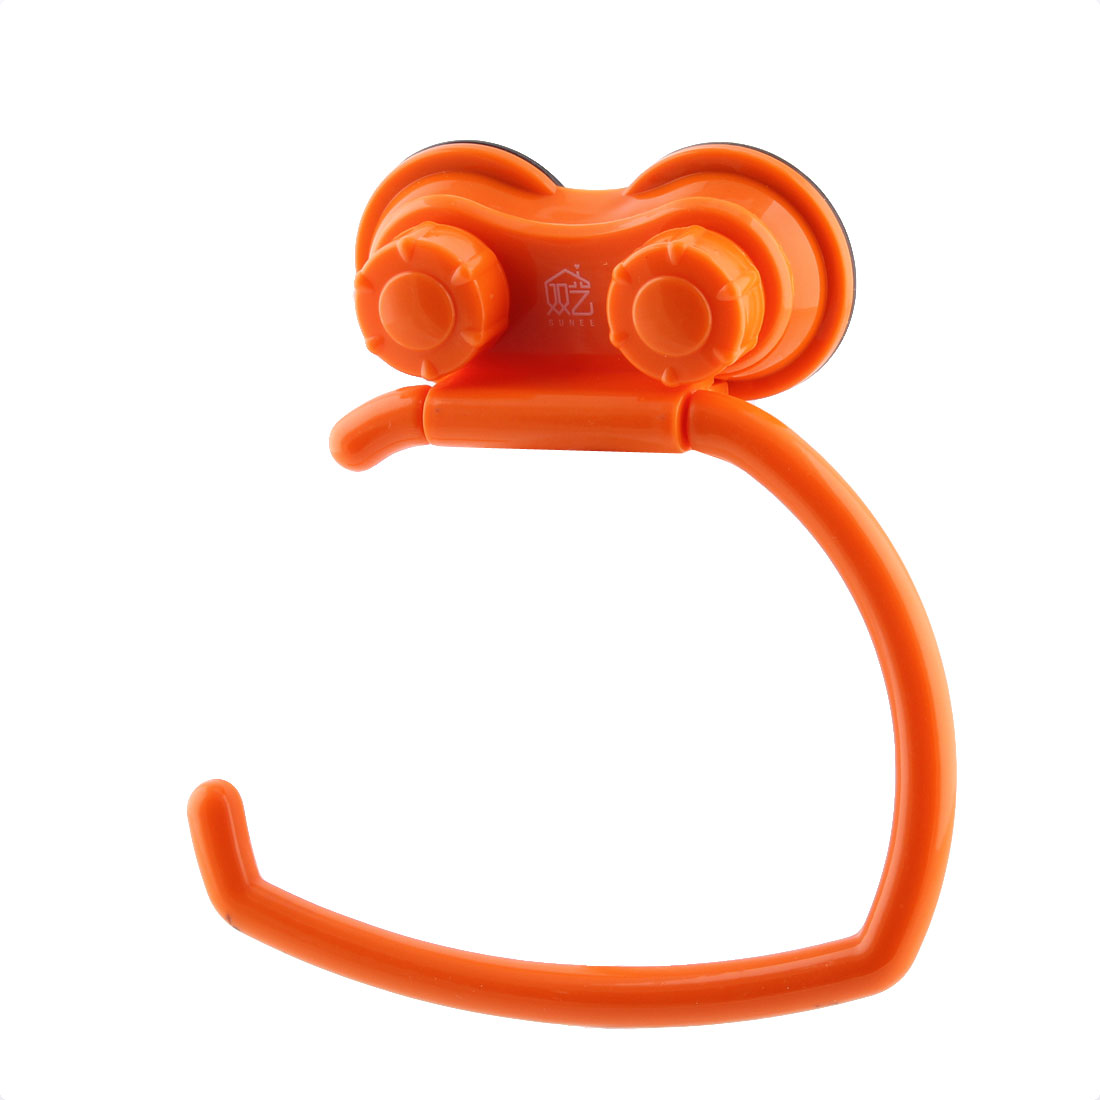 Household Plastic Towel Hanger Rolls Paper Wall Mount Suction Cup Sucker Holder Orange